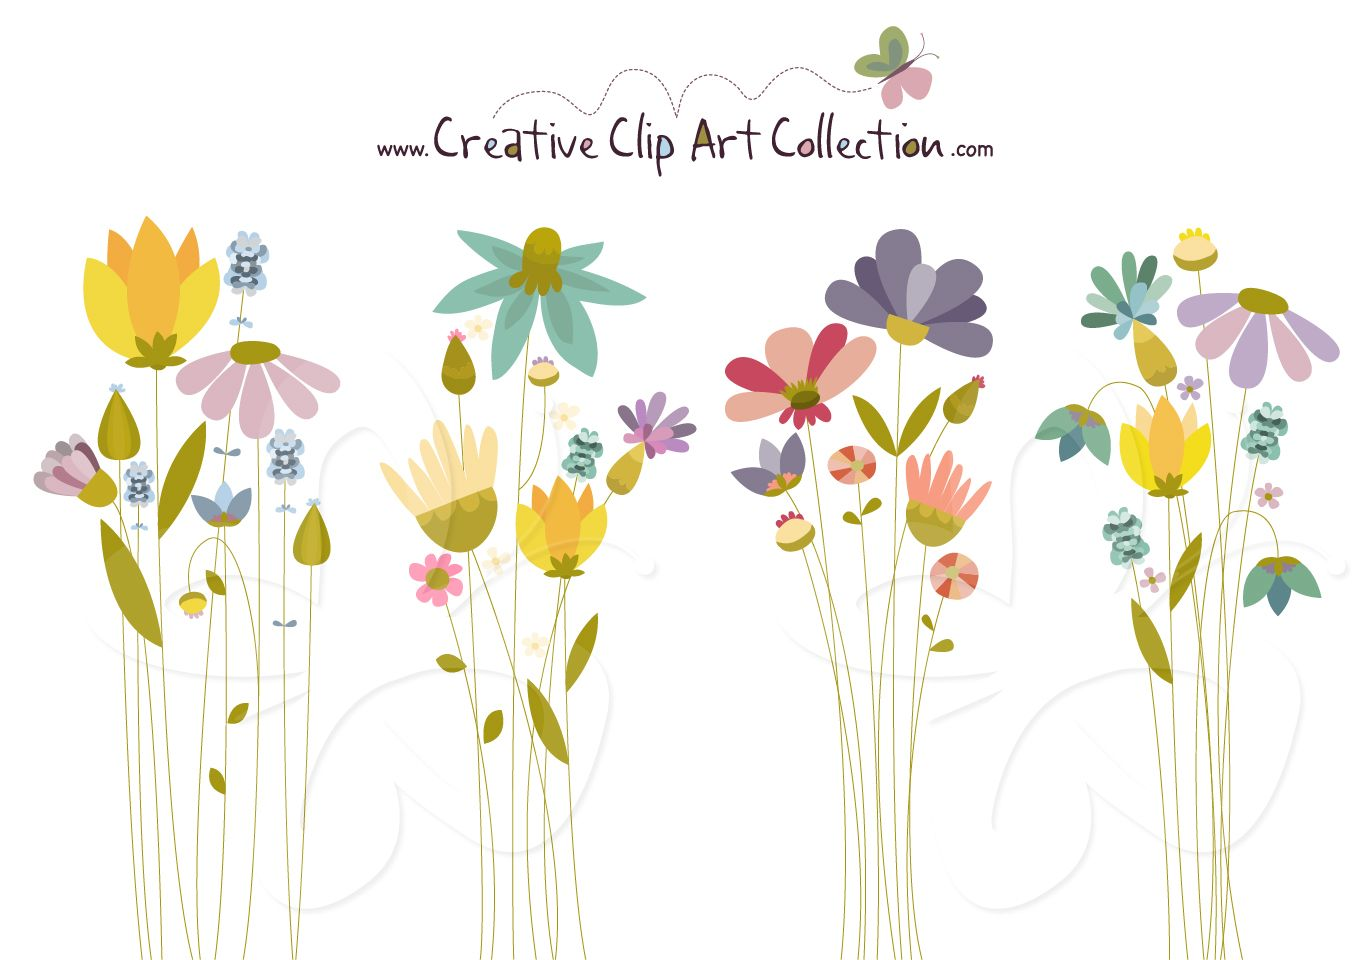 Flowers inspired by meadows. Beautiful clipart cute